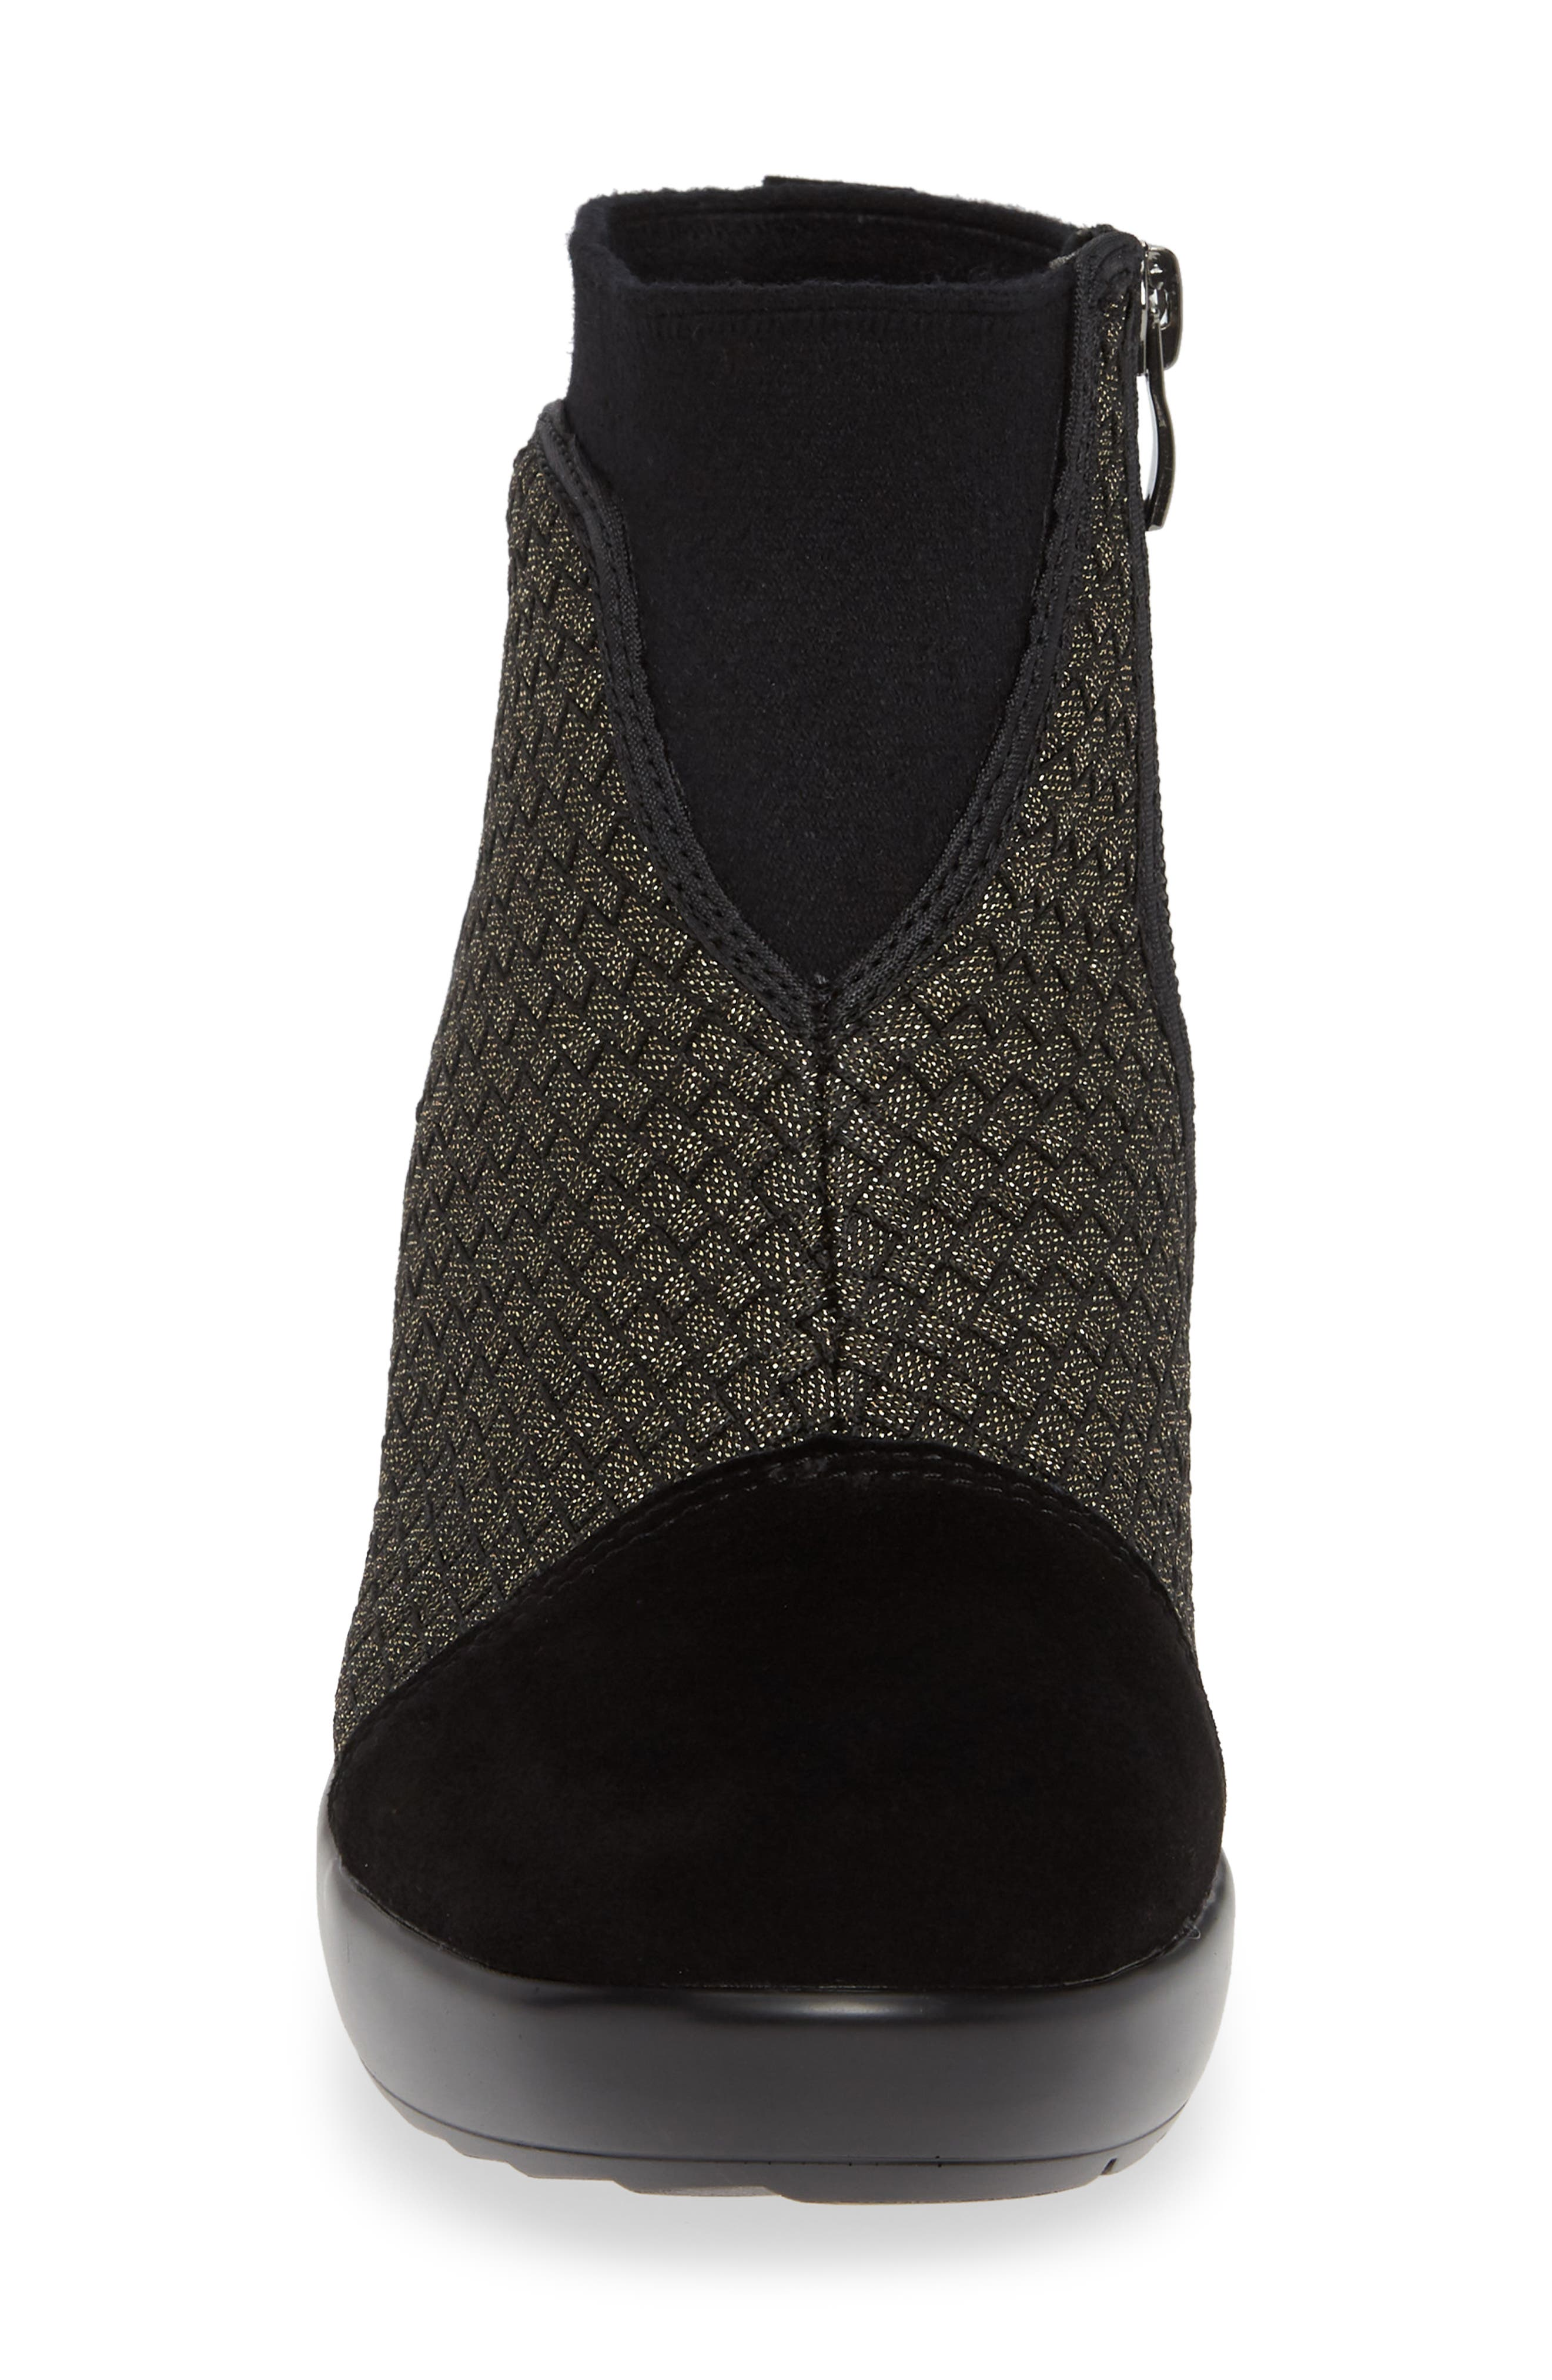 Zoe Wedge Bootie,                             Alternate thumbnail 4, color,                             GOLD BLACK SHIMMER LEATHER